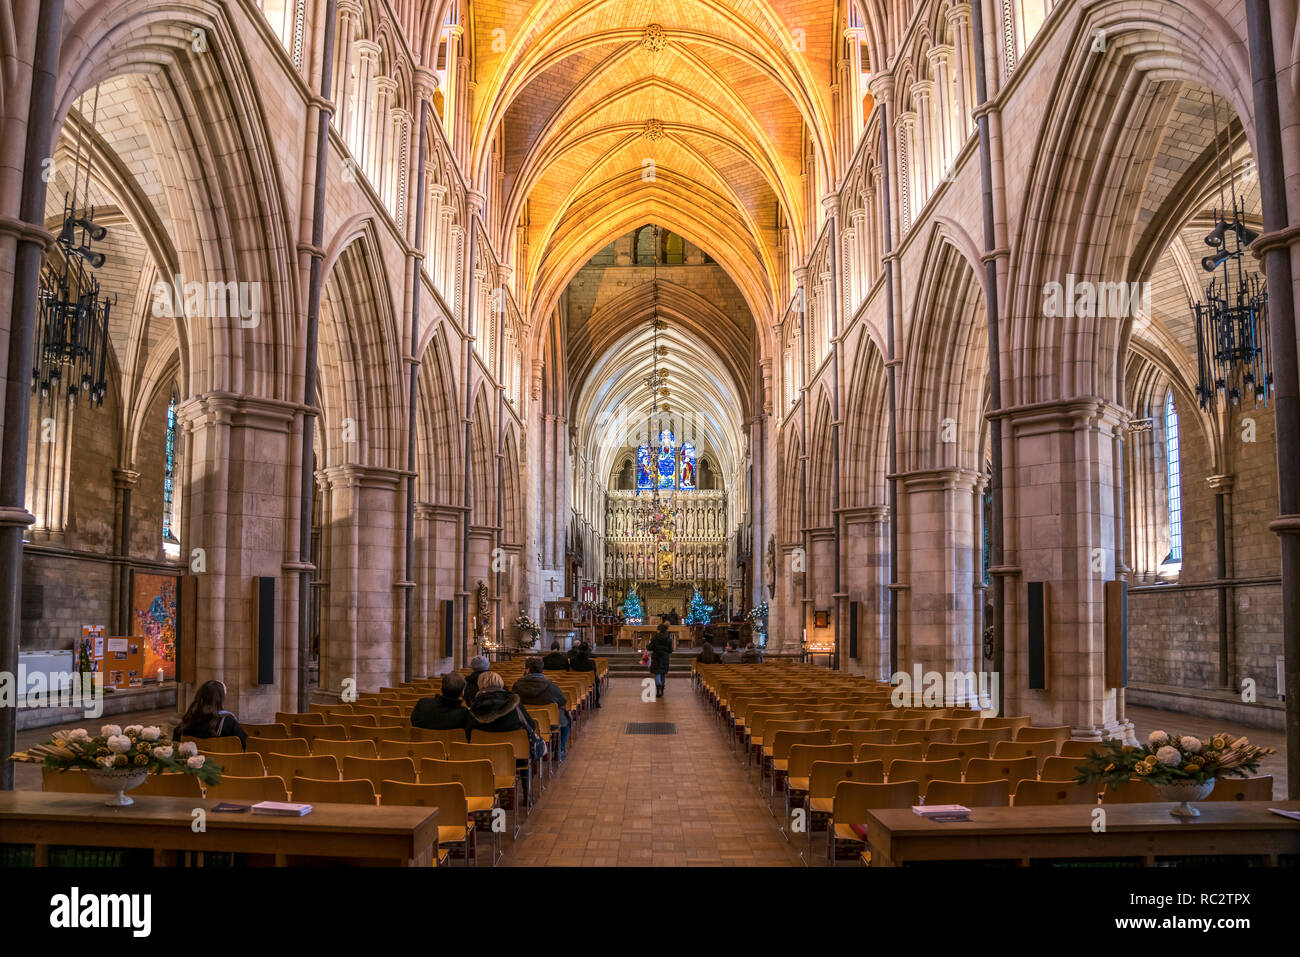 Innenraum der Southwark Cathedral, London, Vereinigtes Königreich Großbritannien, Europa |  Southwark Cathedral interior, London, United Kingdom of Gr - Stock Image